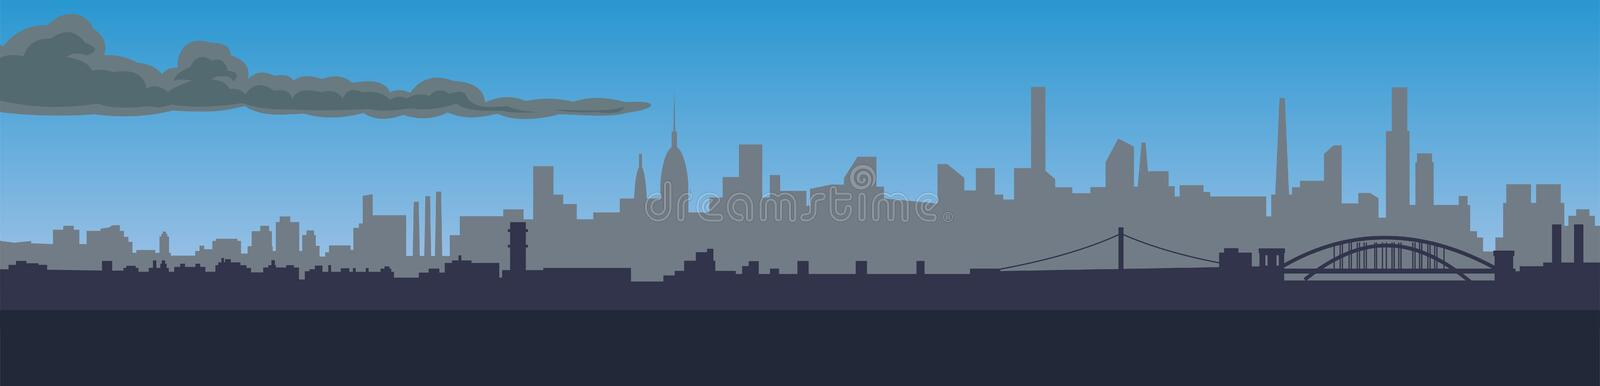 Panorama of the big night city, design for your projects royalty free illustration